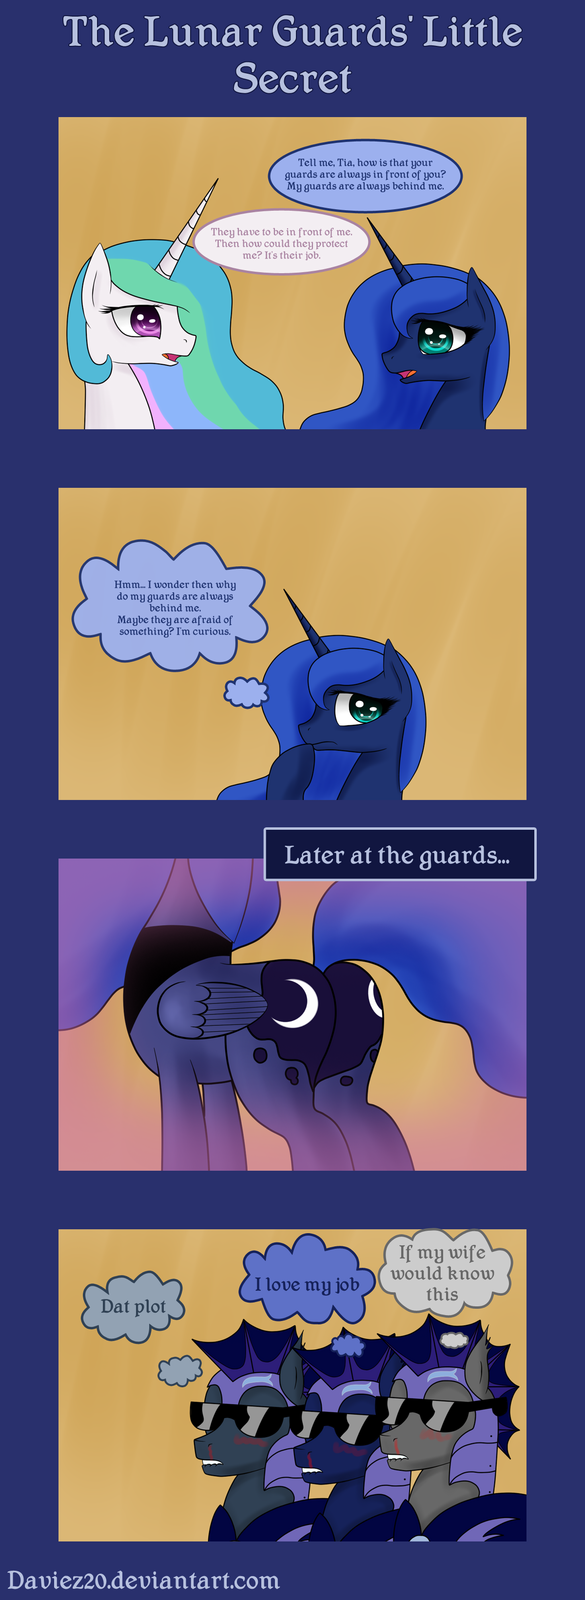 The Lunar Guards' Little Secret